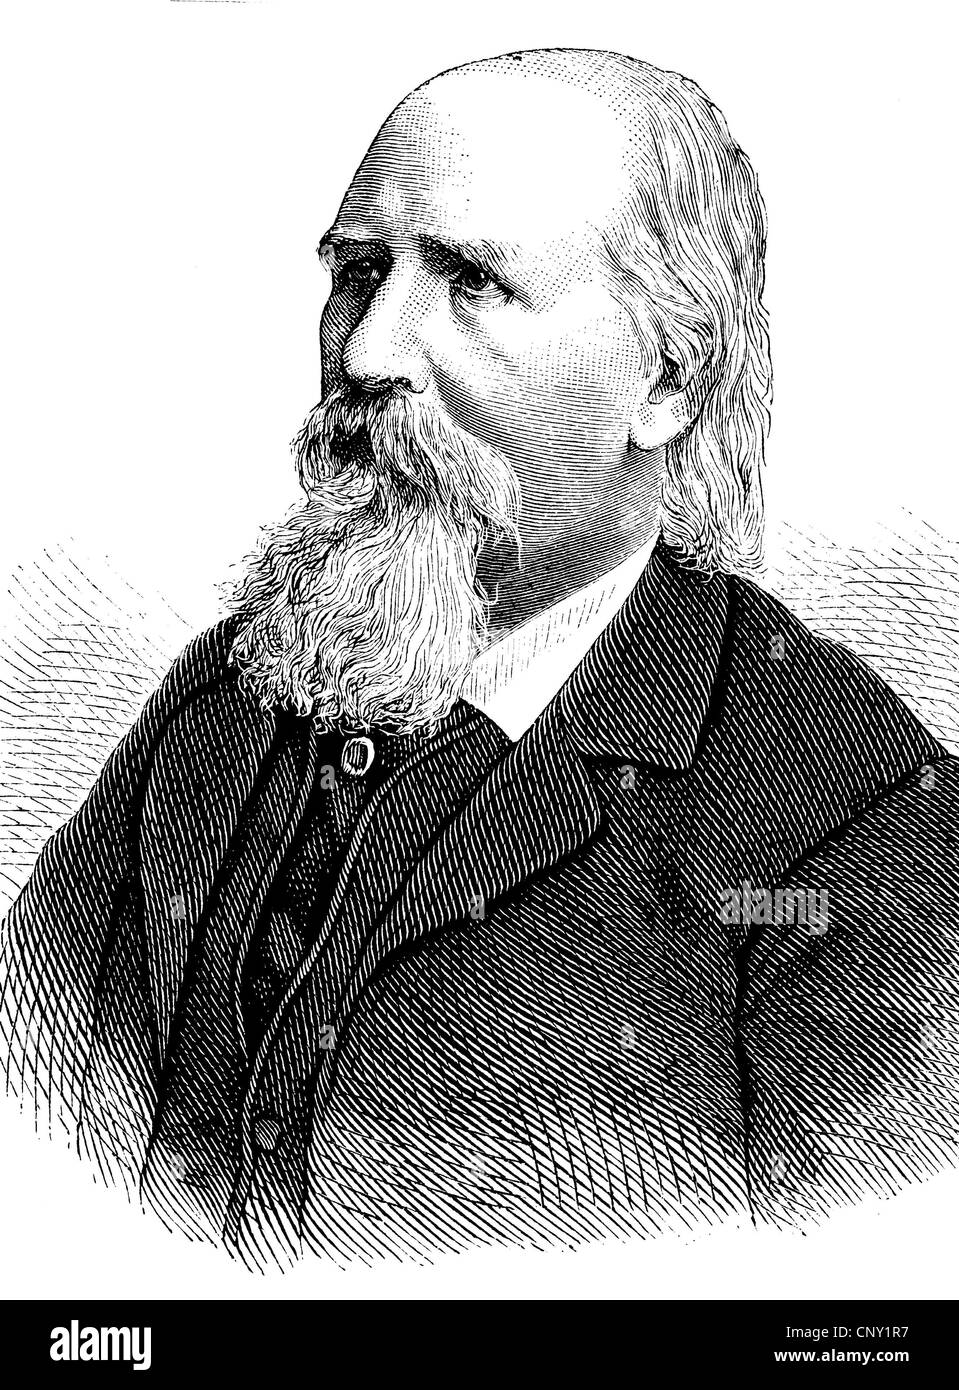 Franz Emanuel August Geibel, 1815-1884, a German poet, historic engraving, about 1888 - Stock Image